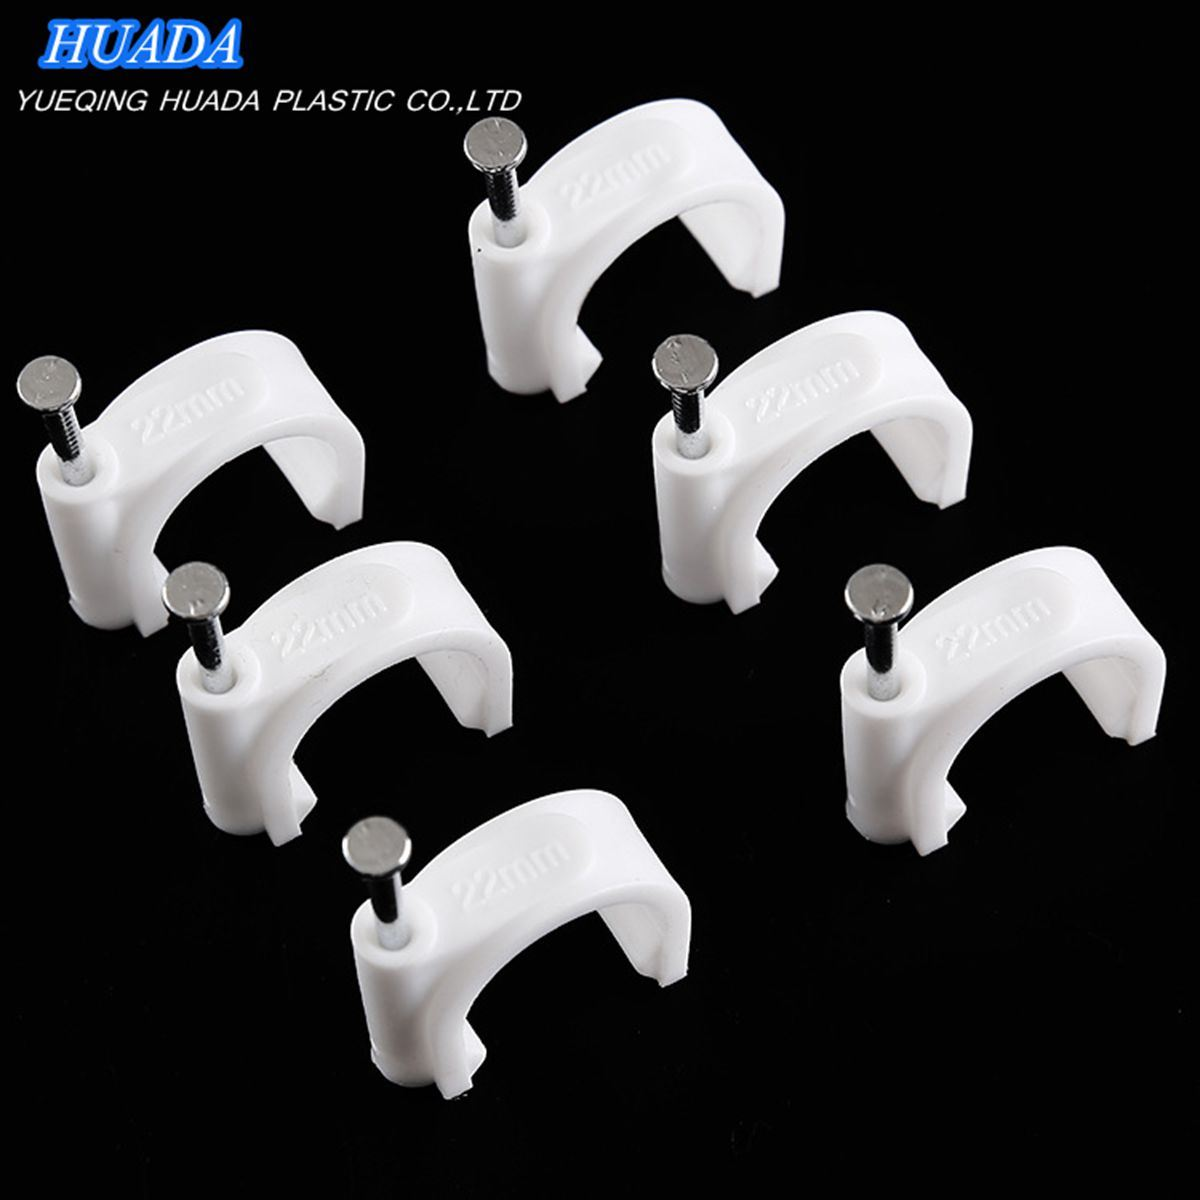 10PCS White Cable Clips Clamp Organizer for RJ45 Cat5e CAT6 Phone Cable Wire